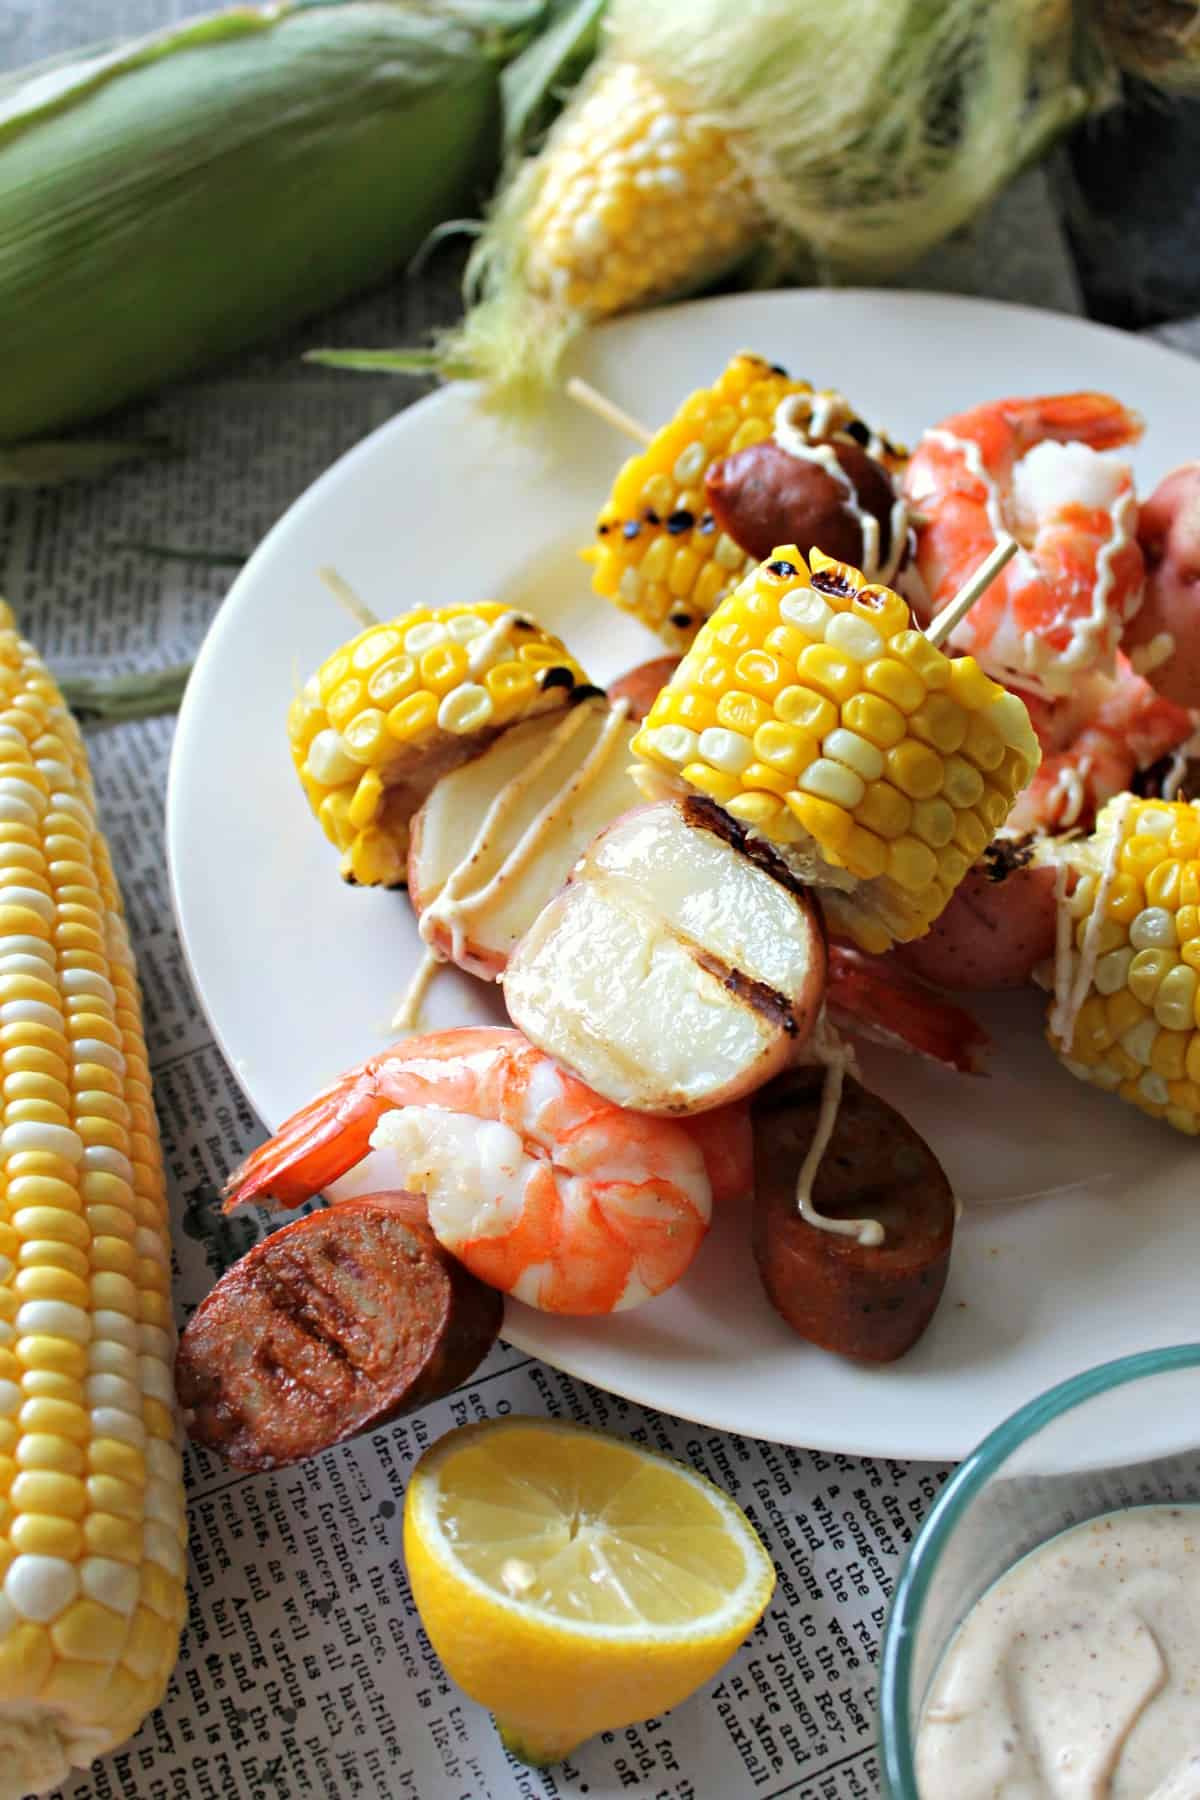 Shrimp Boil Kabobs drizzled with a homemade Old Bay seasoning aioli is summer on a stick